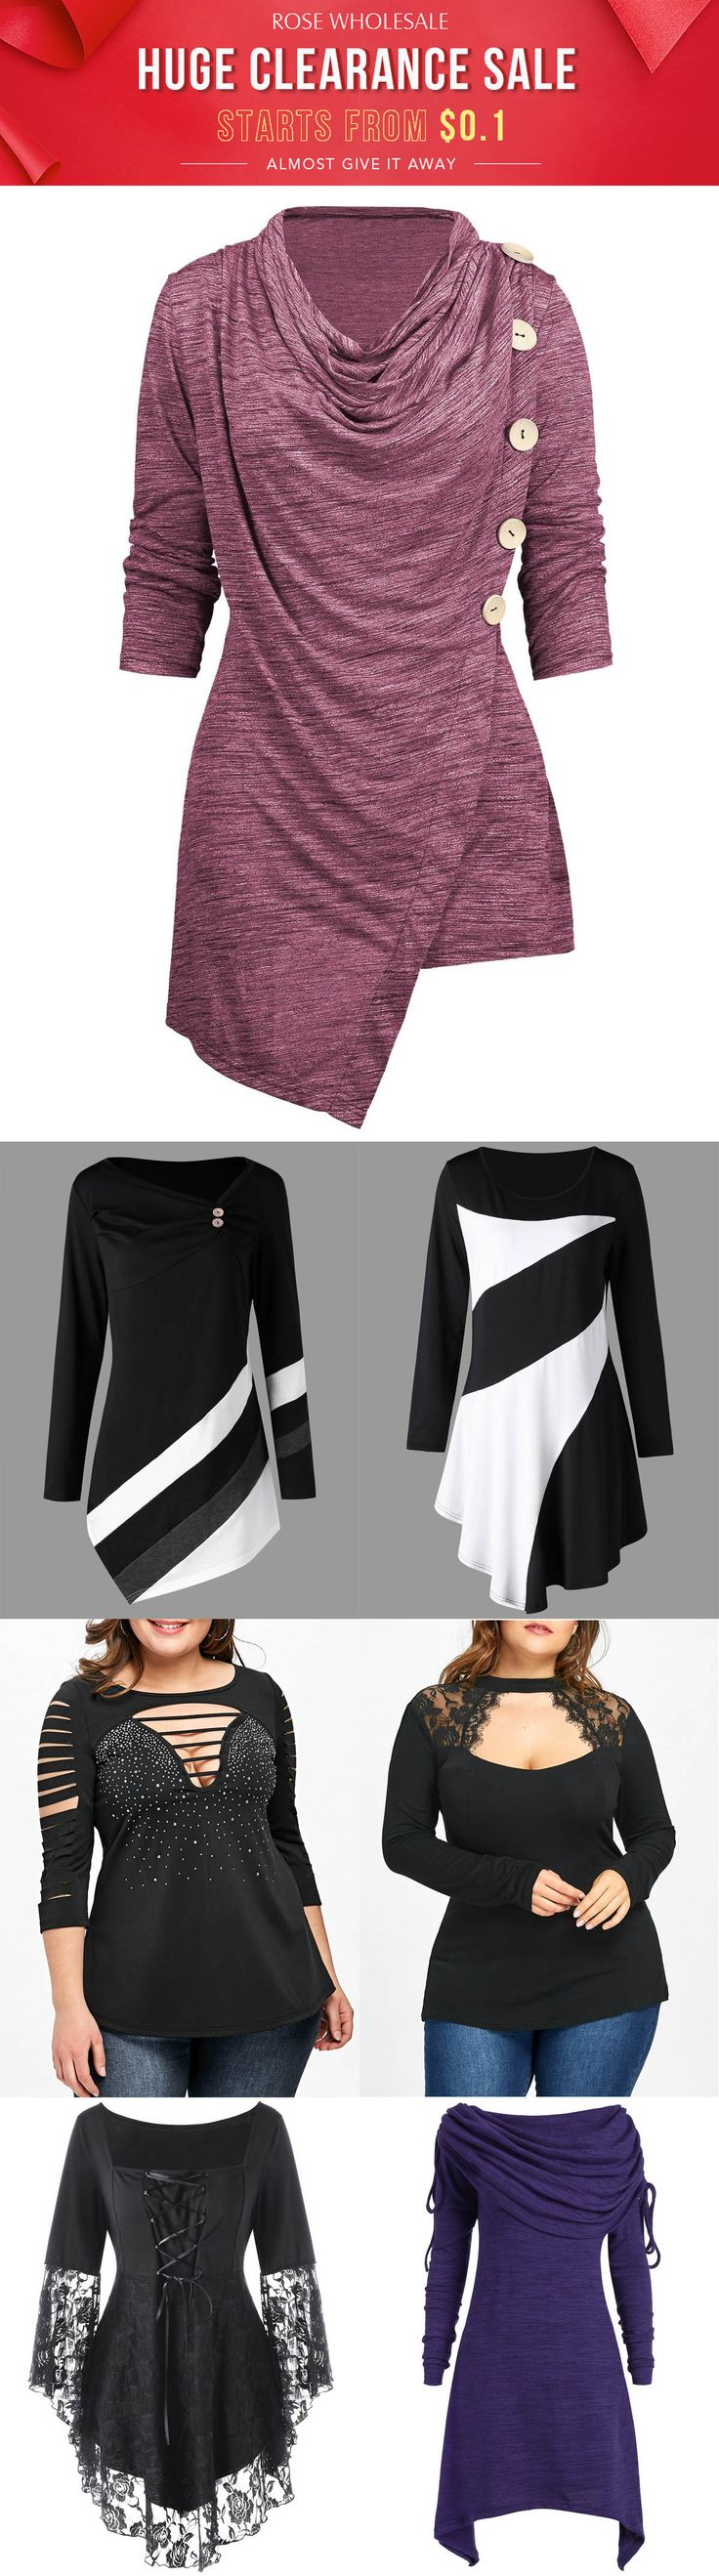 Up to 80% off, Rosewholesale plus size t shirts for women | rosewholesale,rosewholesale.com,rosewholesale plus size,rosewholesale tops,rosewholesale t shirts,rosewholesale tops plus size,rosewholesale for women,rosewholesale clothes,rosewholesale.com clot